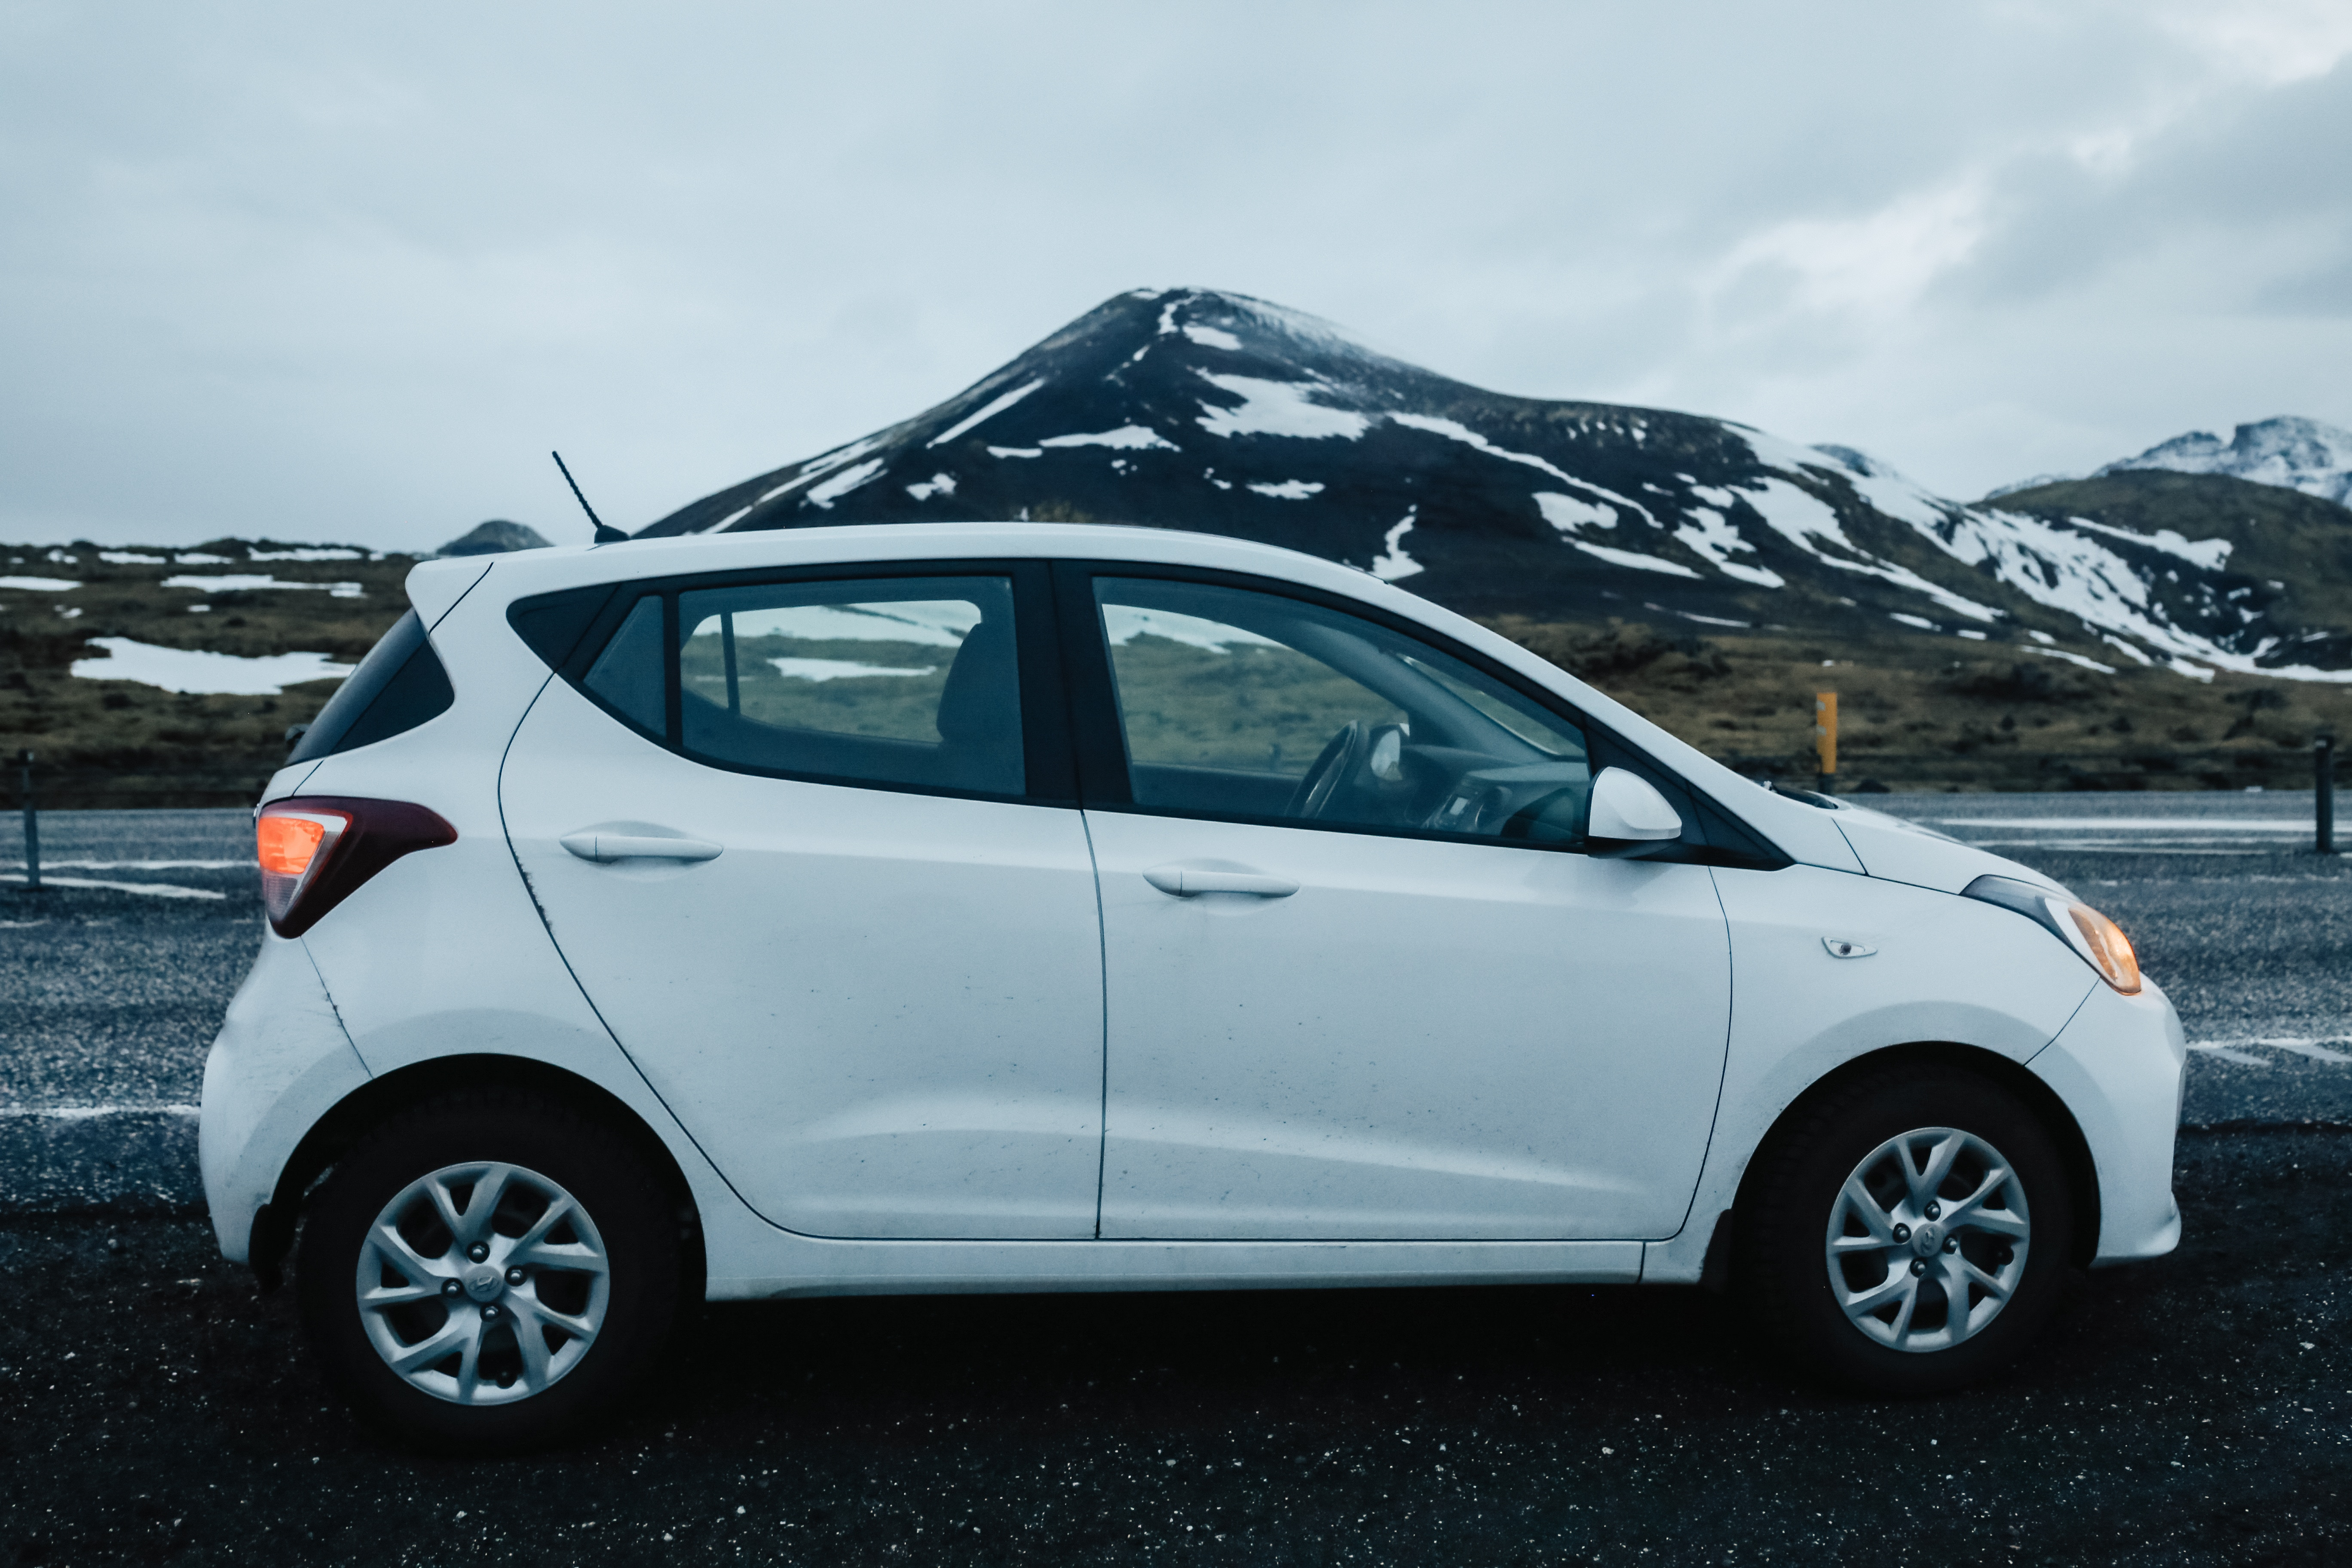 Our small rental car in Iceland